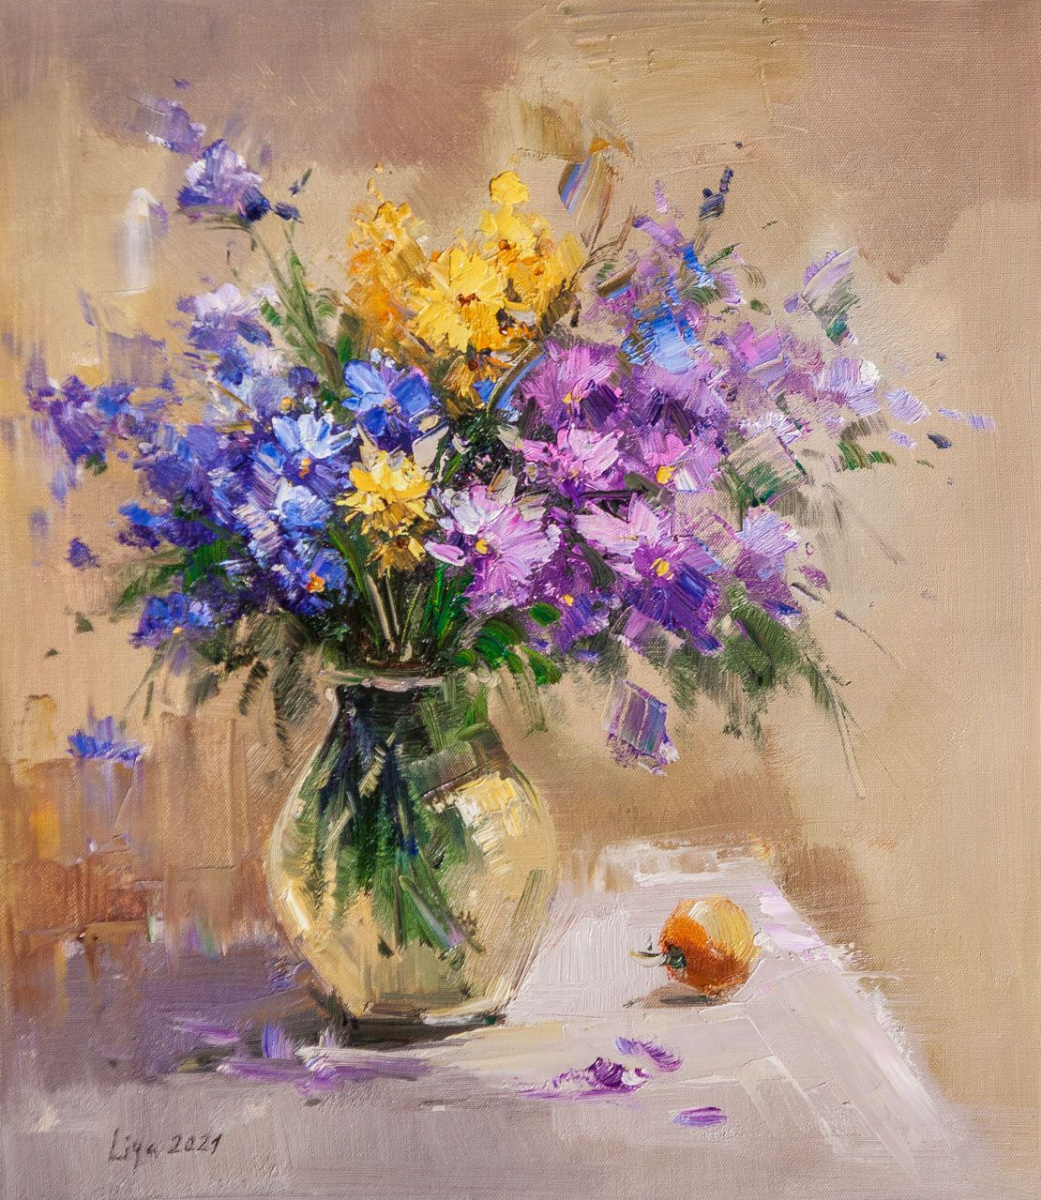 (no name). A bouquet of cornflowers in a glass vase